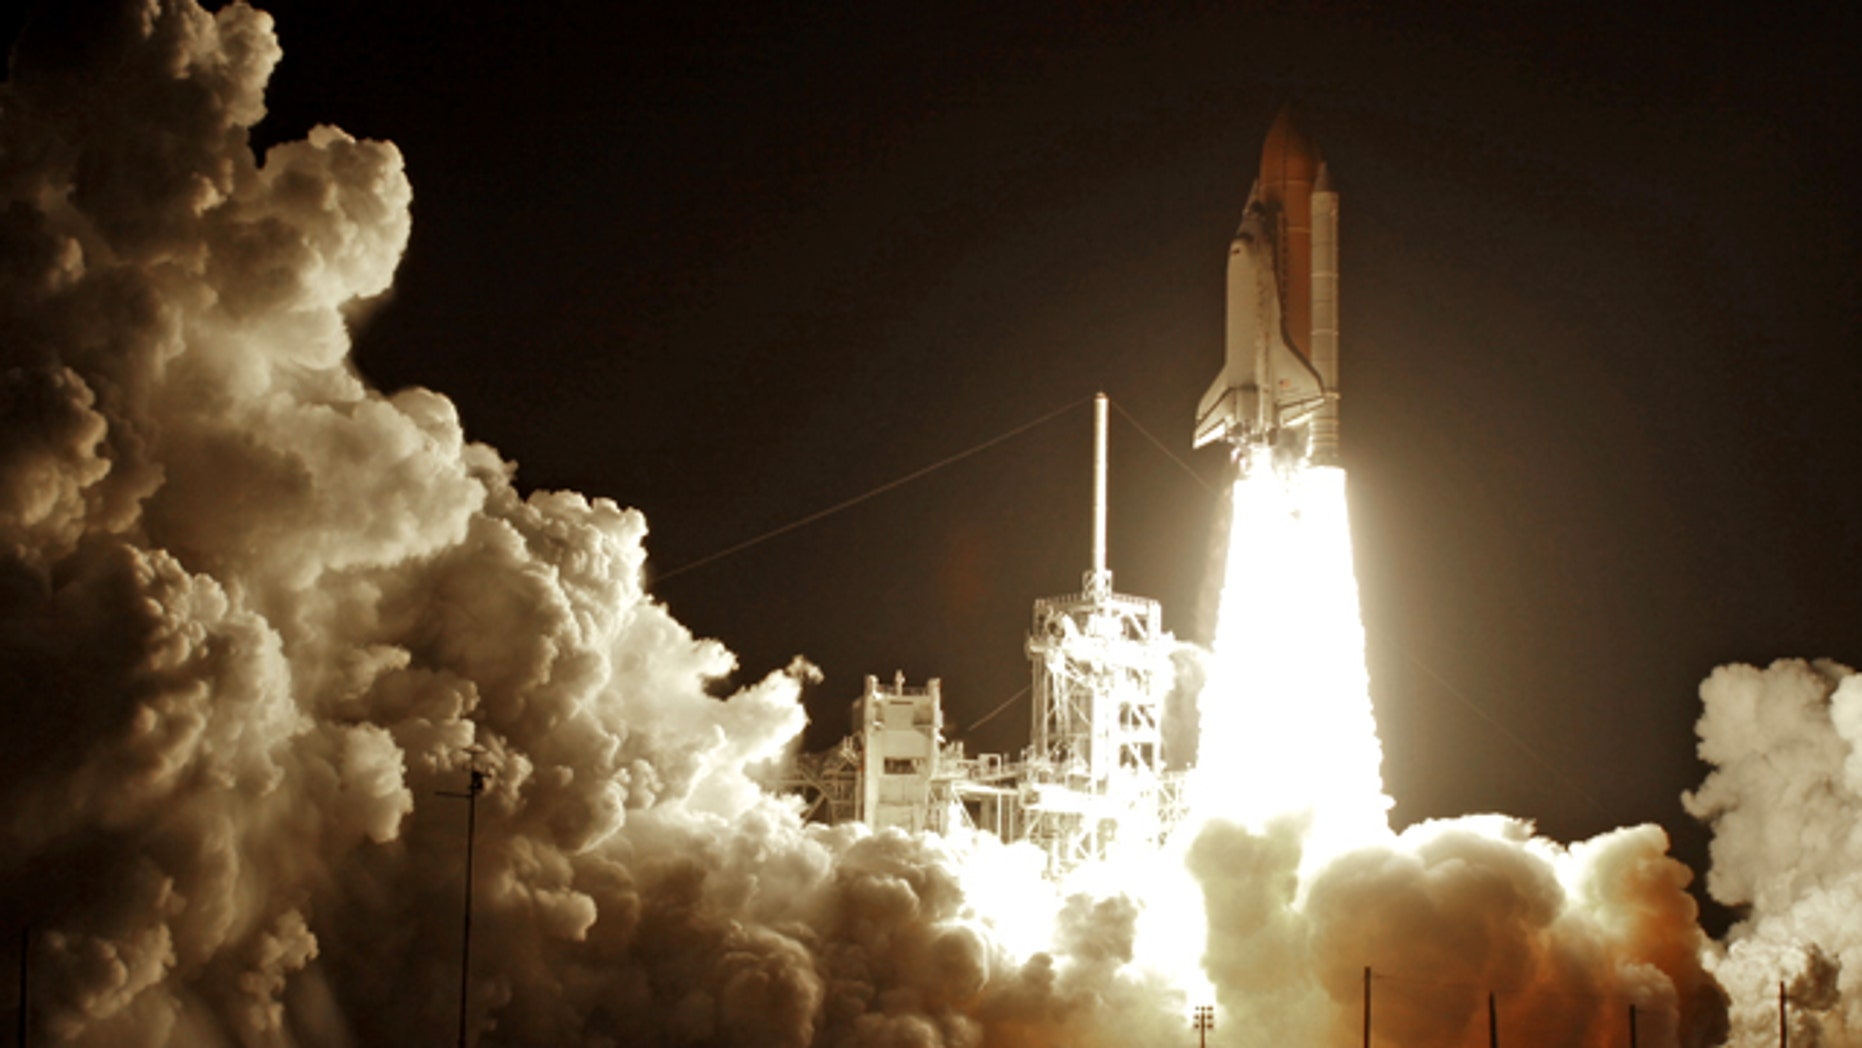 Space Shuttle Discovery lifts-off from the Kennedy Space Center at Cape Canaveral, Fla. Monday April 5, 2010. Discovery's seven member crew are on a mission to deliver science racks, the last of the crew quarters and supplies to the International Space Station.